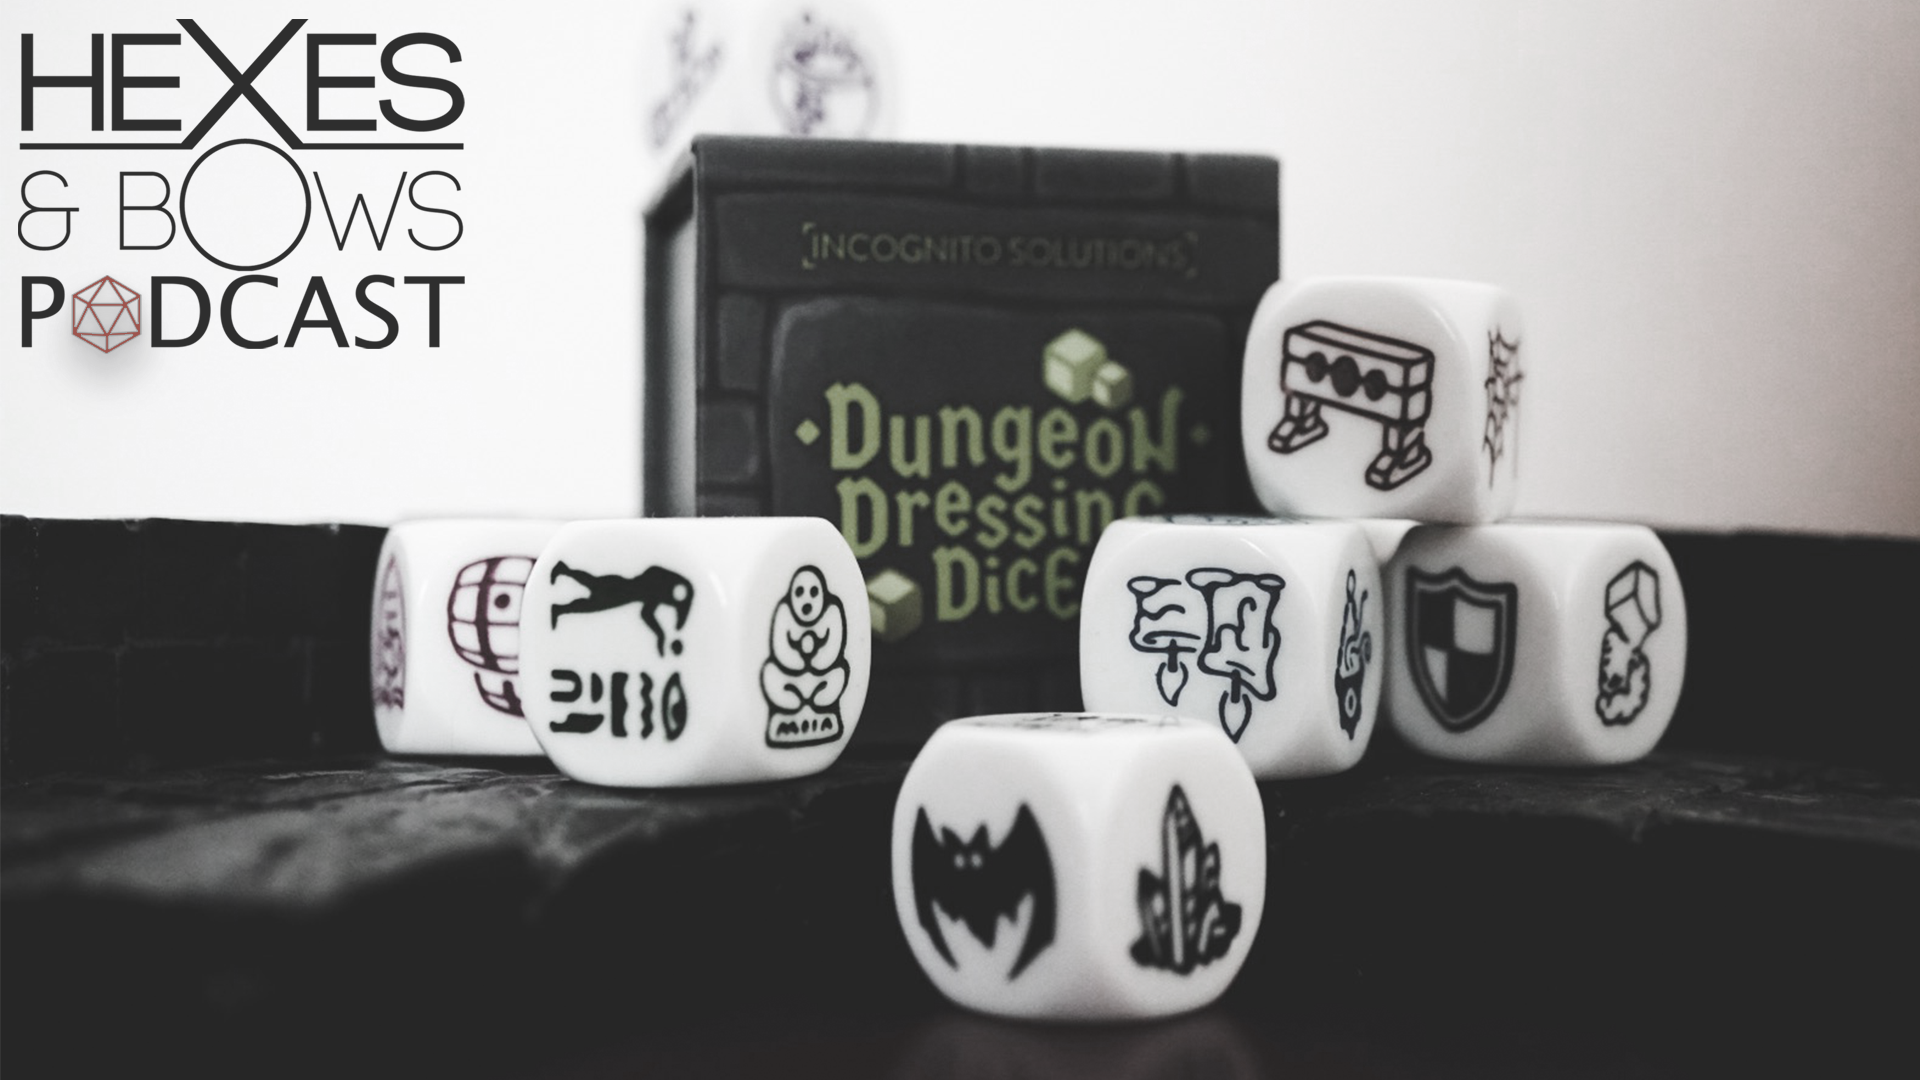 Hexes & Bows Reviews: Dungeon Dressing Dice Kickstarter